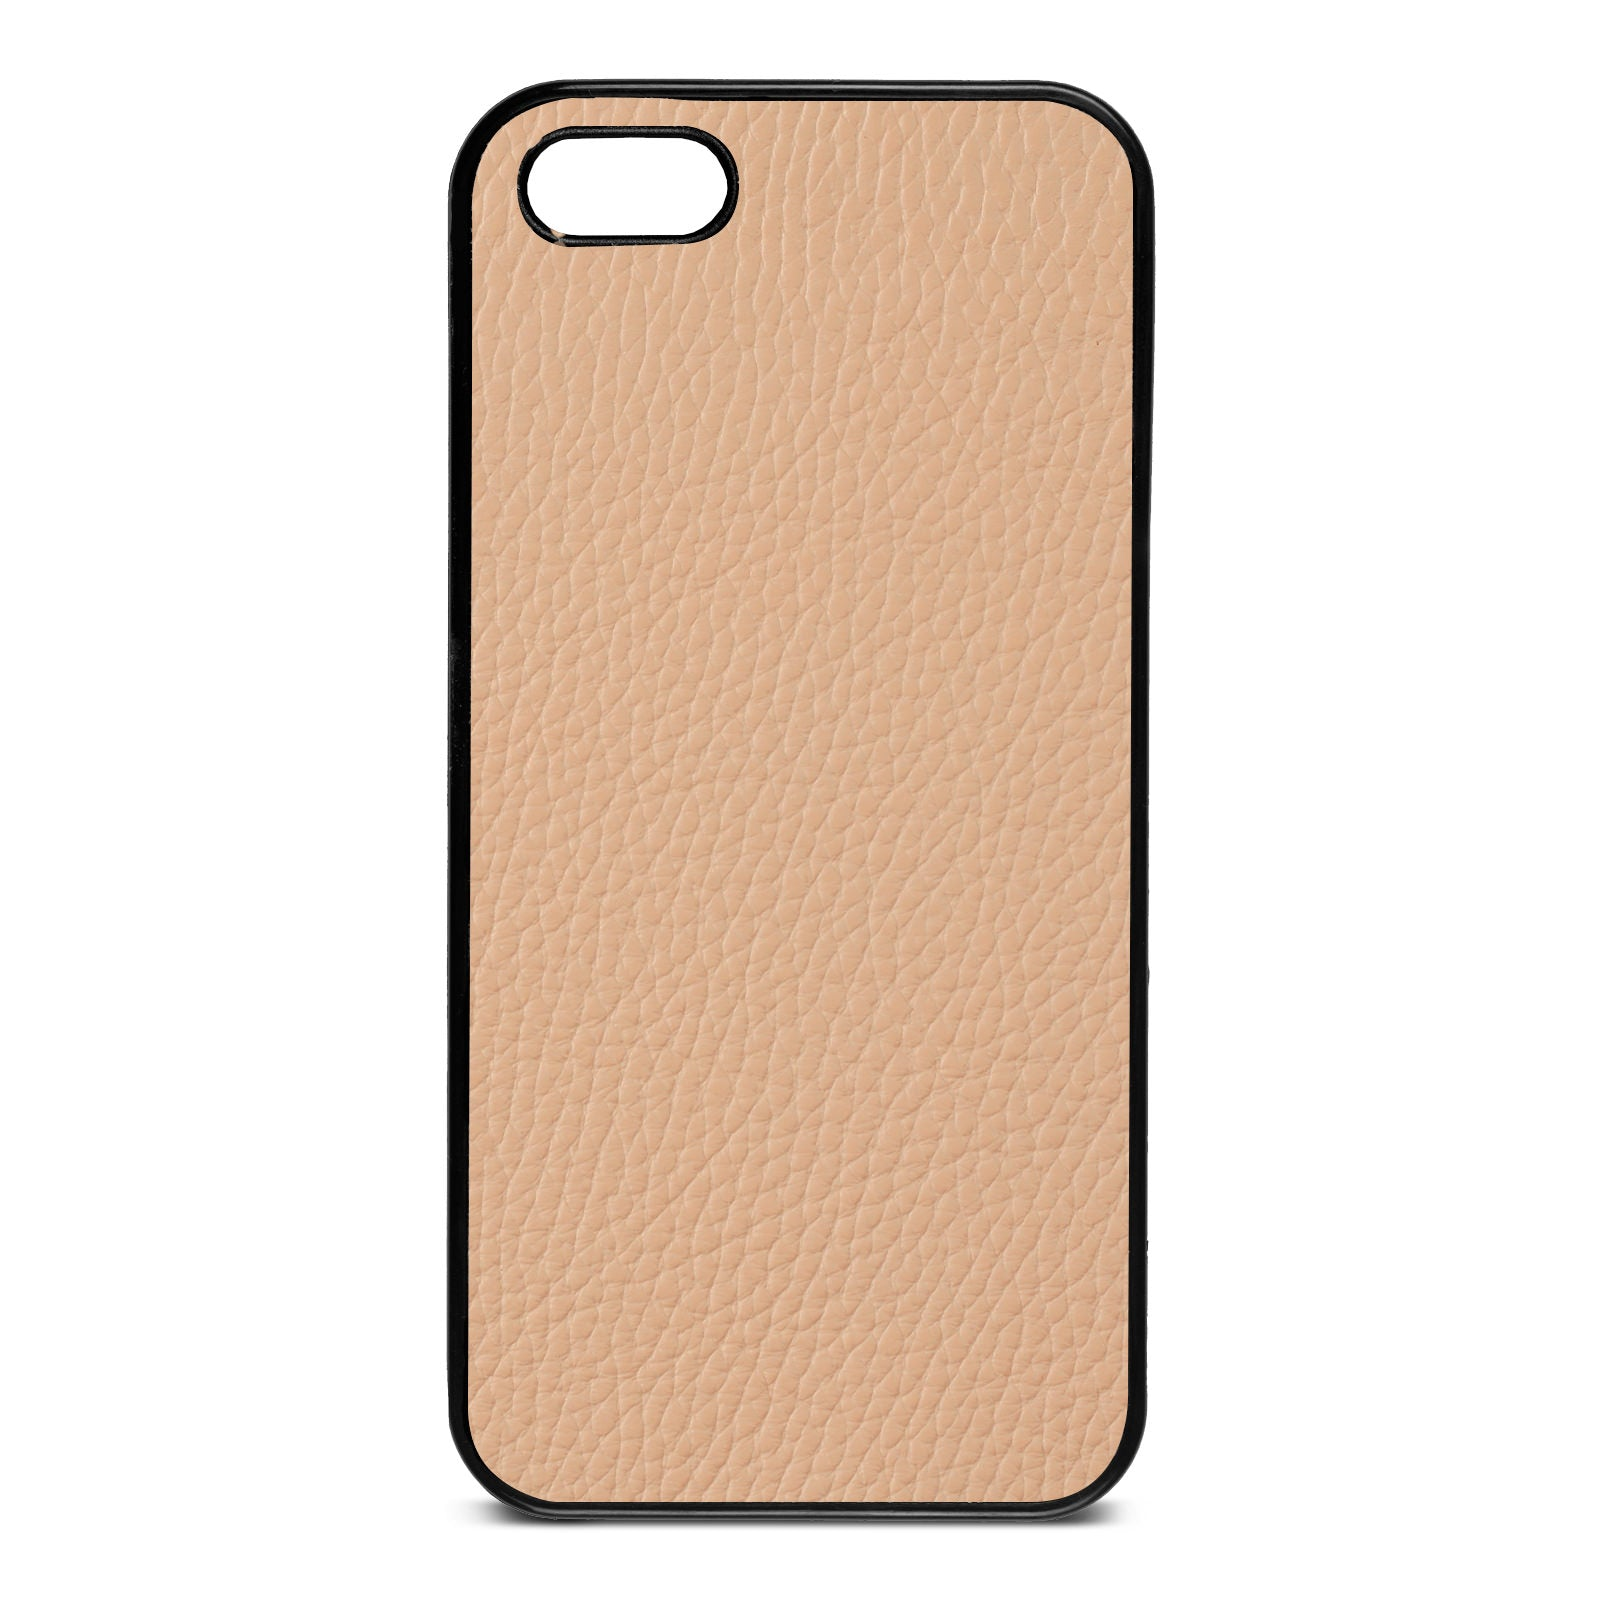 Blank iPhone 5 Nude Pebble Leather Case